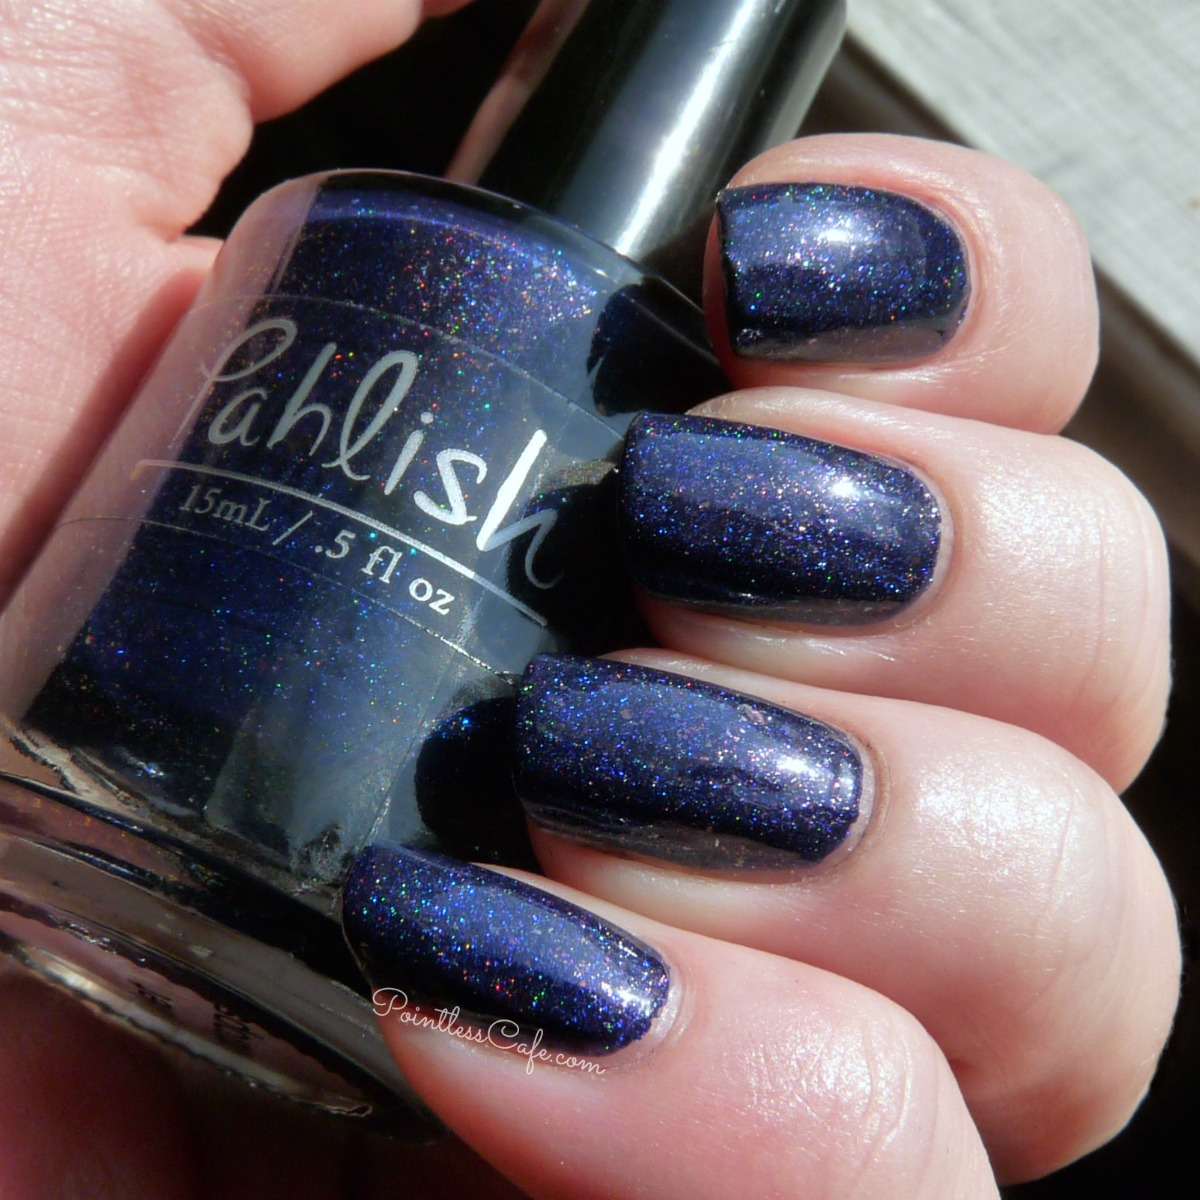 pahlish winter collection 2014 2015 pointless cafe - Violet Cafe 2015